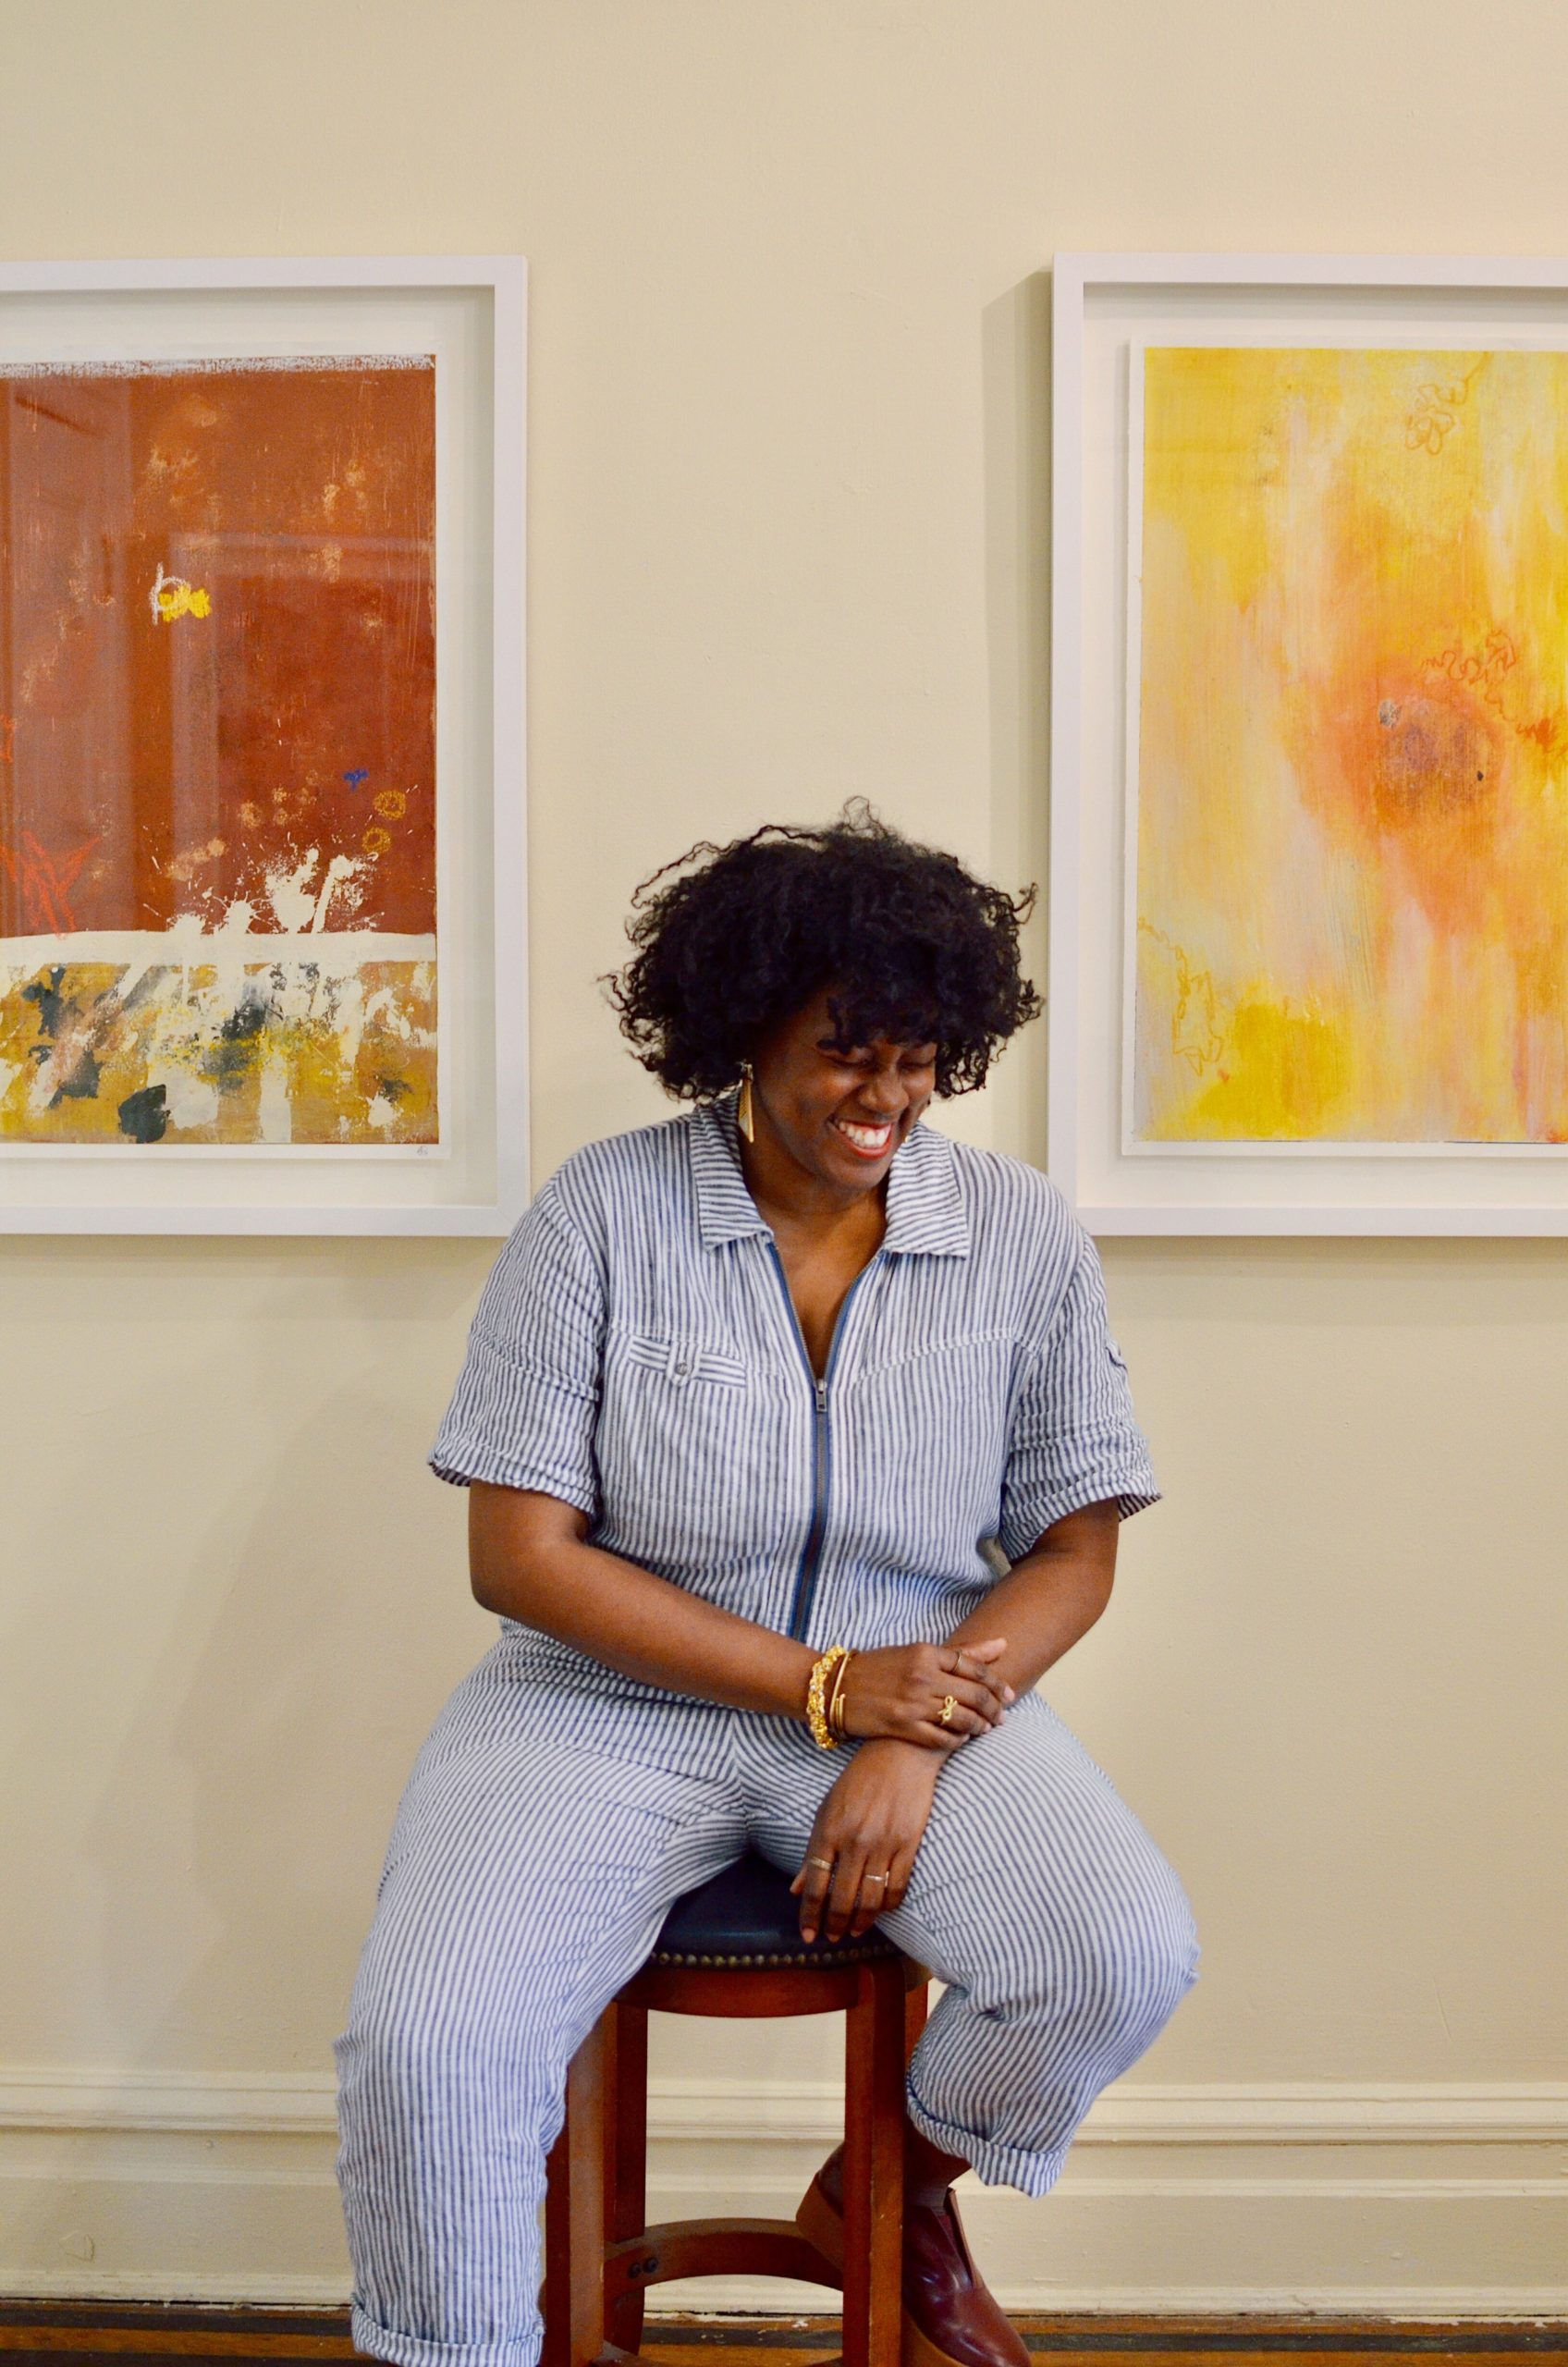 How A Brooklyn Gallery Is Rebelling Against the Art-World Status Quo